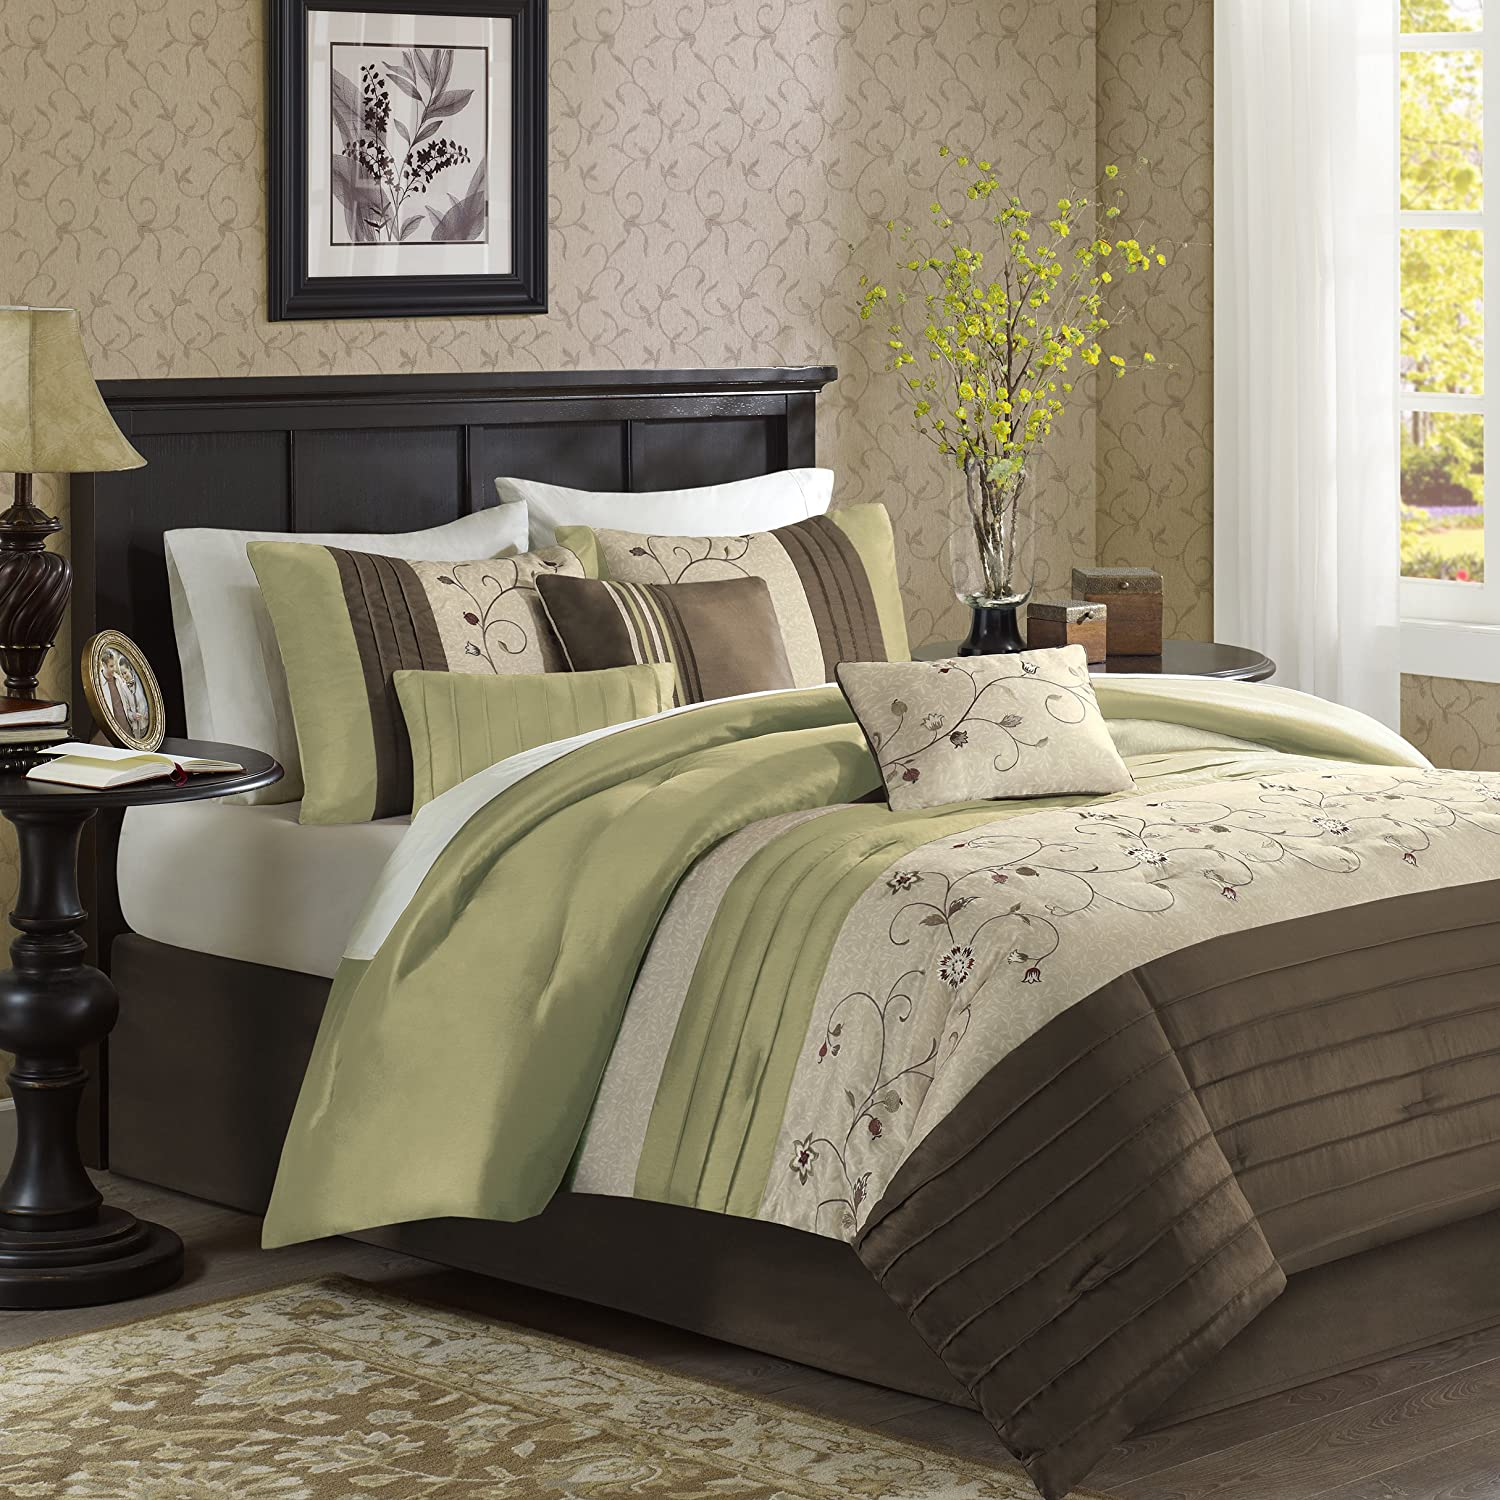 Amazon.com: Madison Park Serene 7 Piece Comforter Set, Queen ...